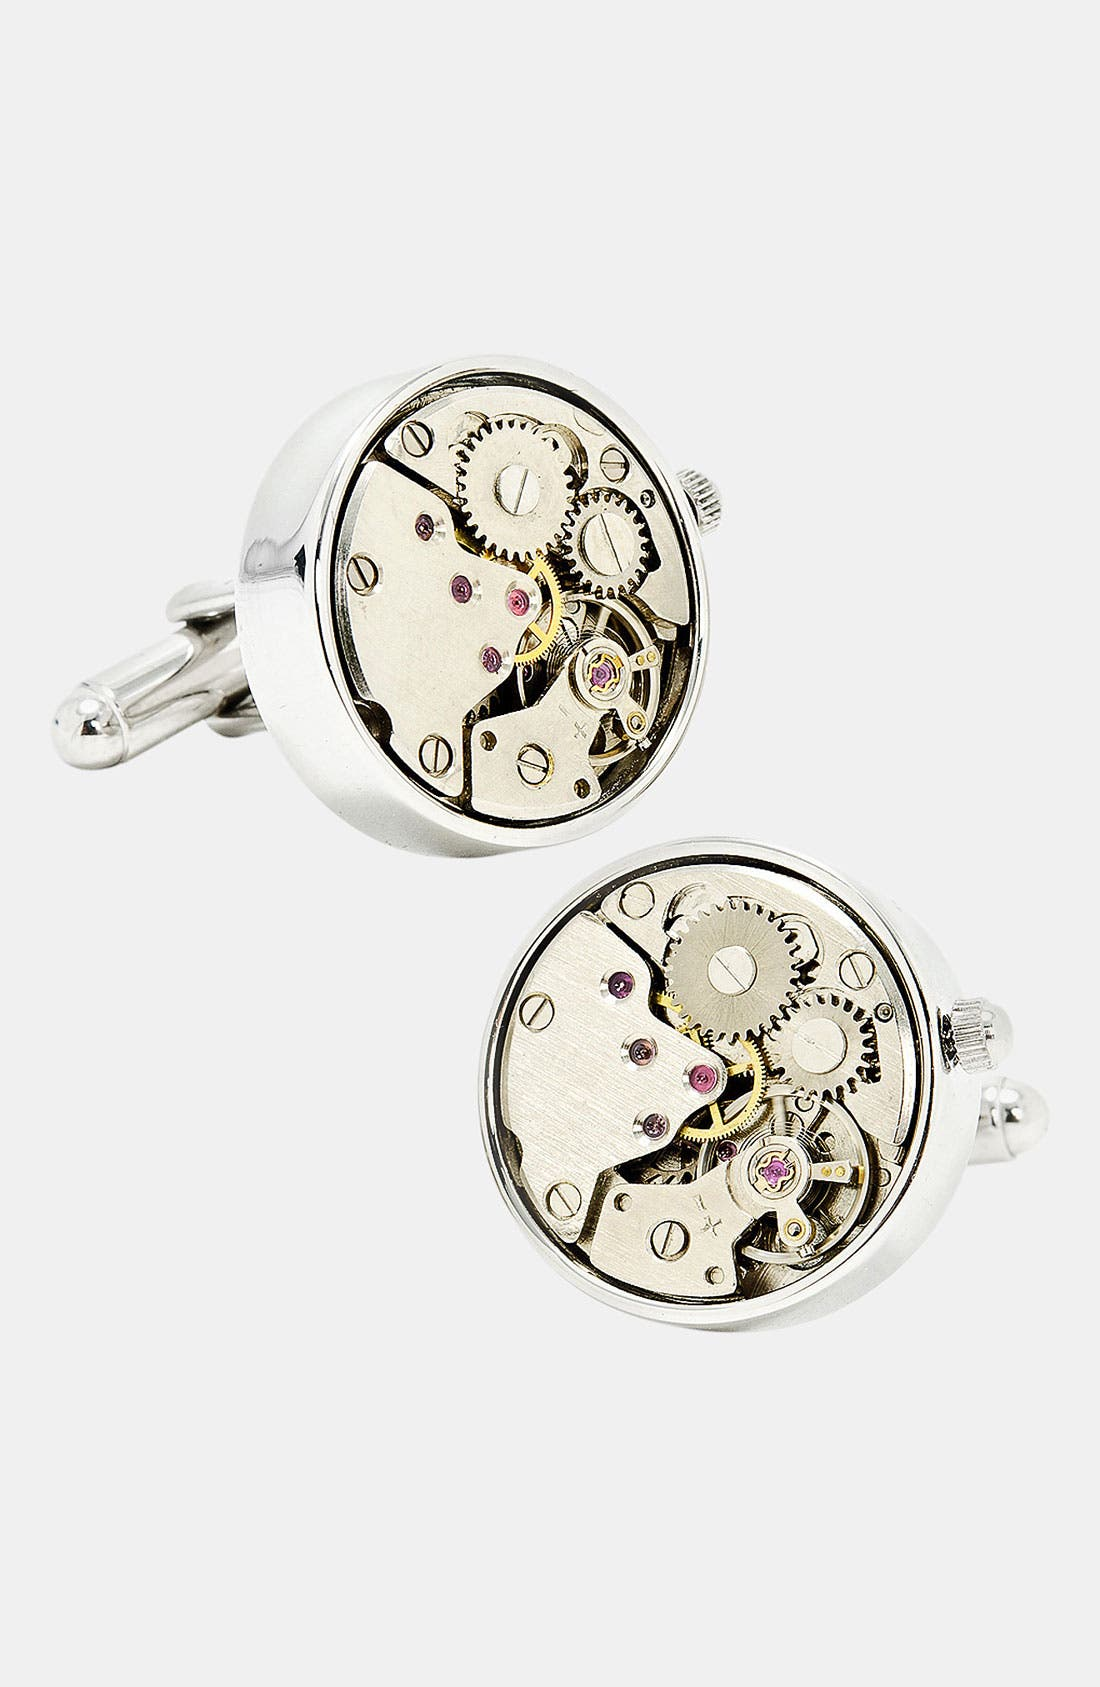 OX AND BULL TRADING CO. Penny Black 40 Steampunk Watch Movement Cuff Links, Main, color, 040